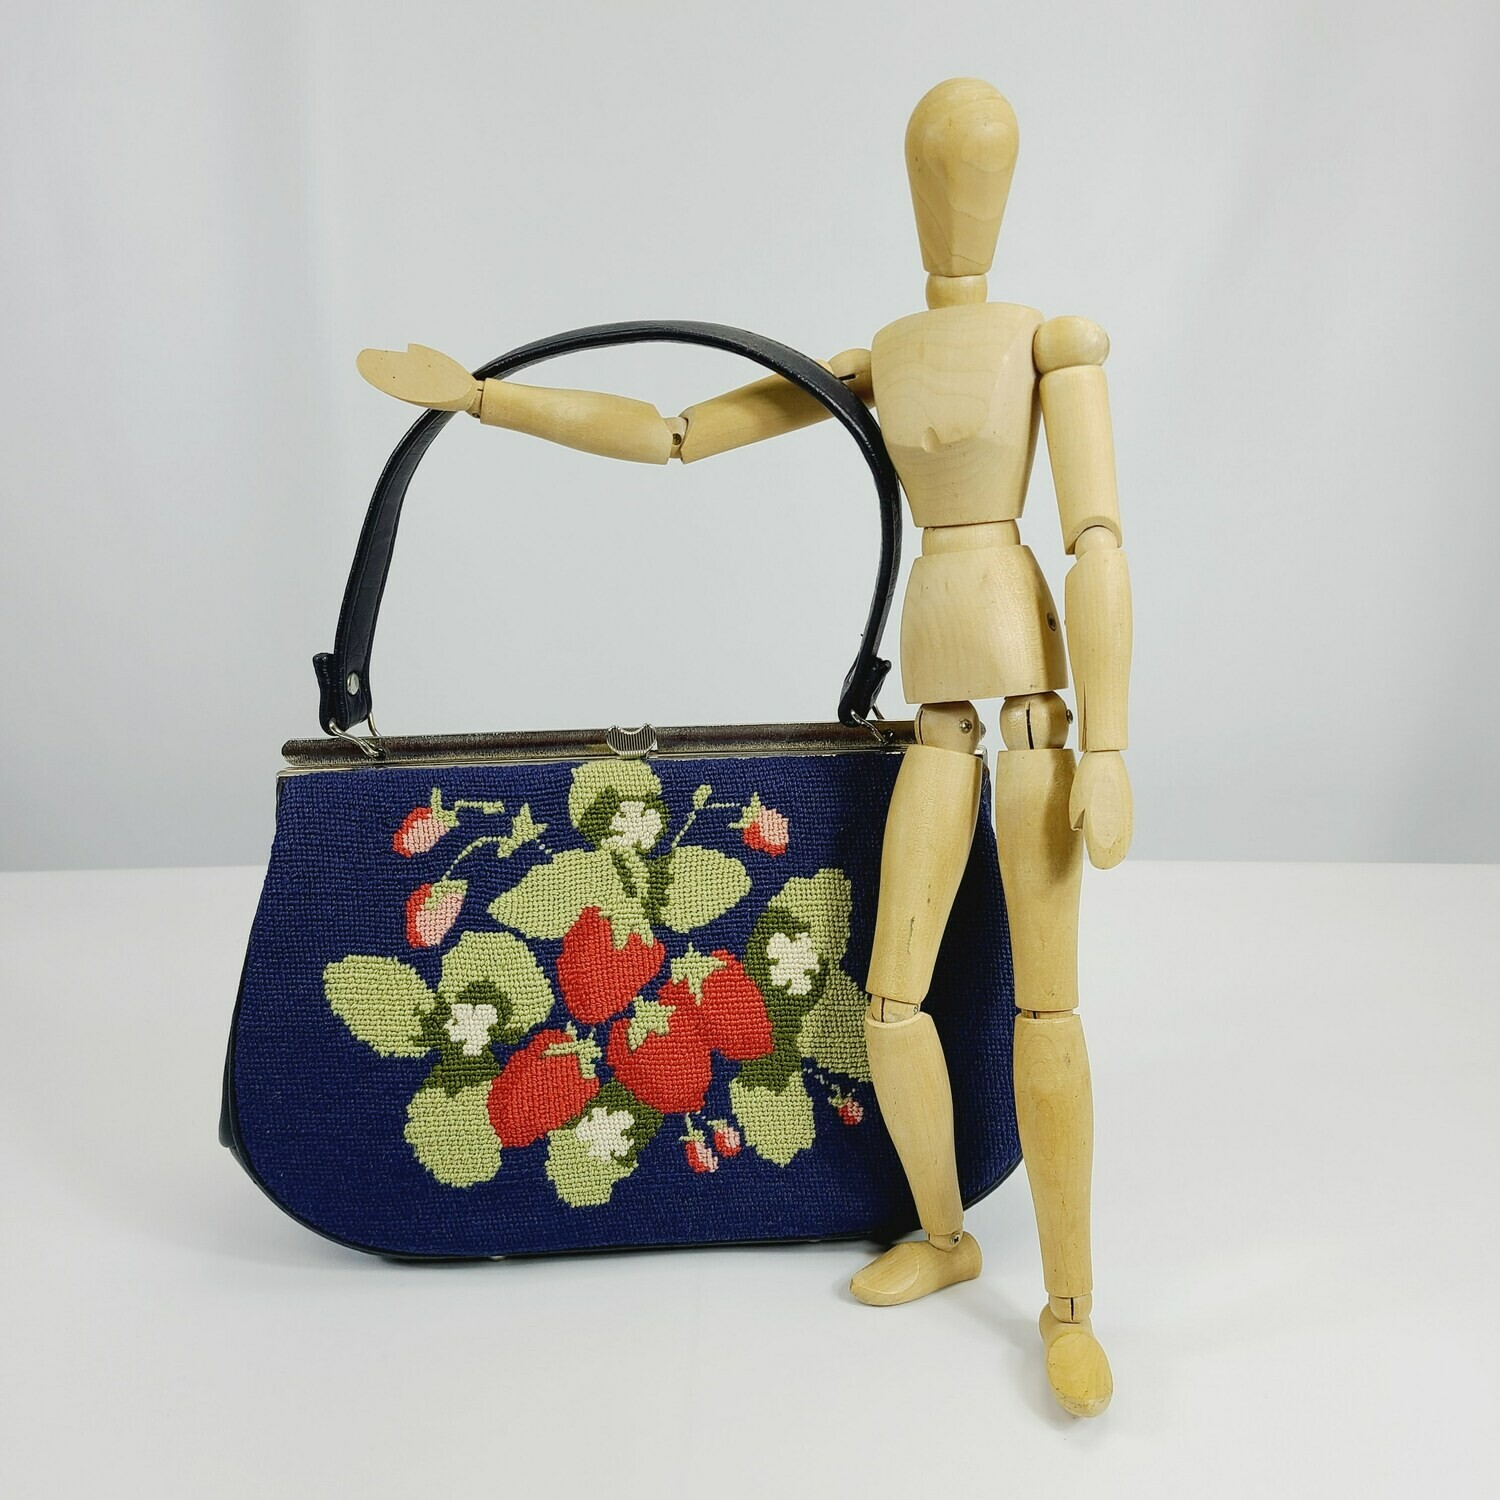 Late 1950s - Early 1960s  Exquisite Needlepoint HandBag